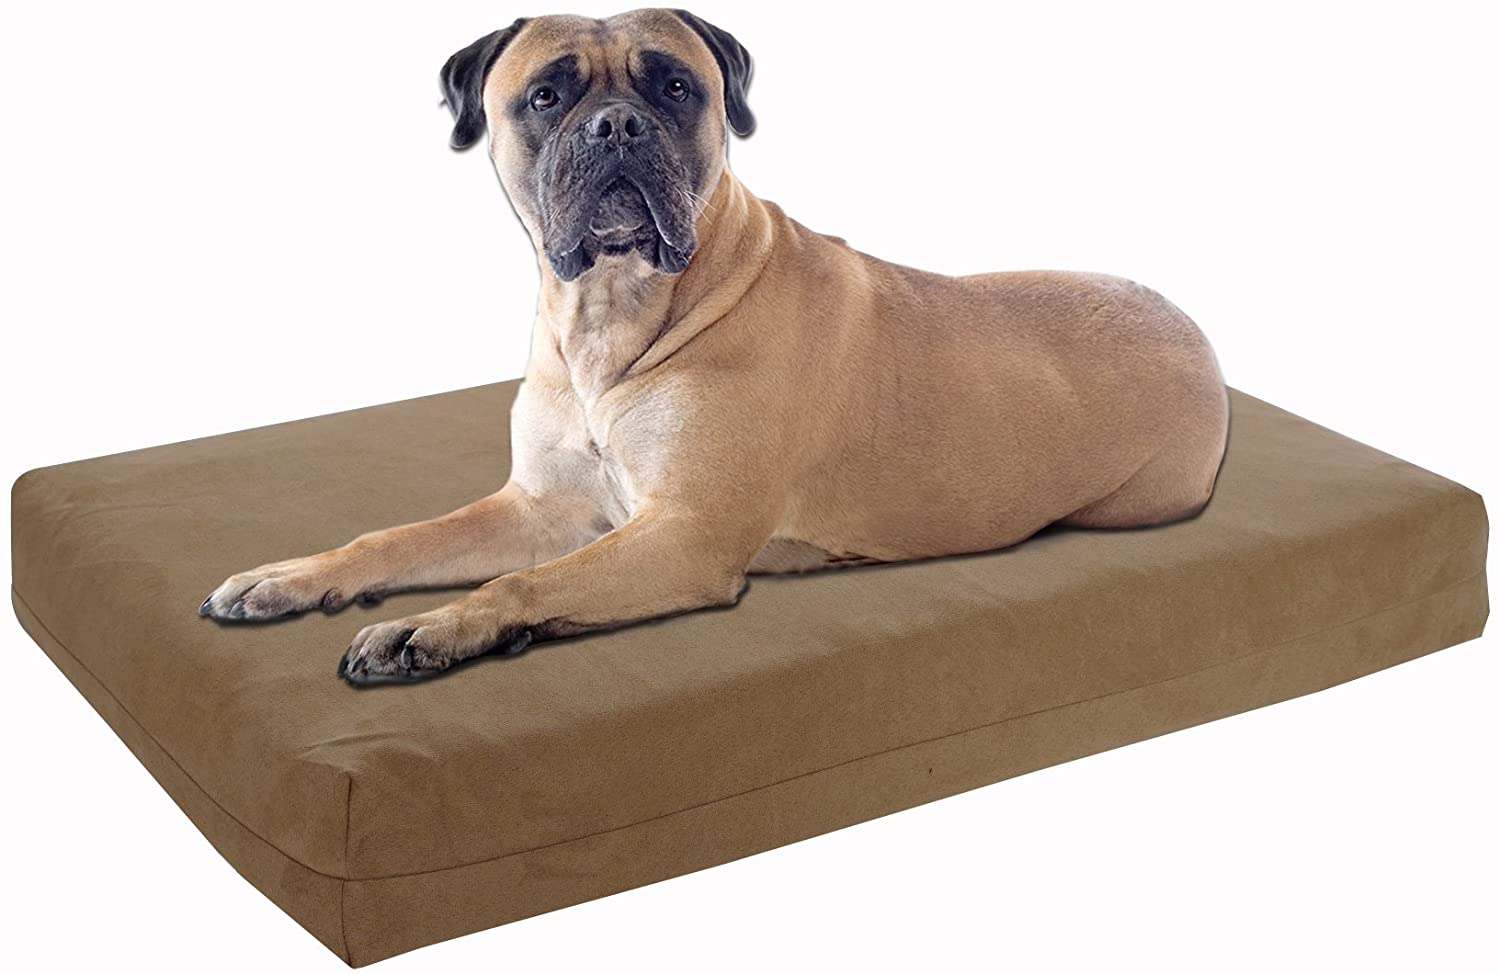 Pet Support Systems Orthopedic Memory Foam Dog Beds - Eco Friendly, Hypoallergenic and Made in The USA, Supreme Luxury Comfort and Care for Dogs with Removable and Washable Cover